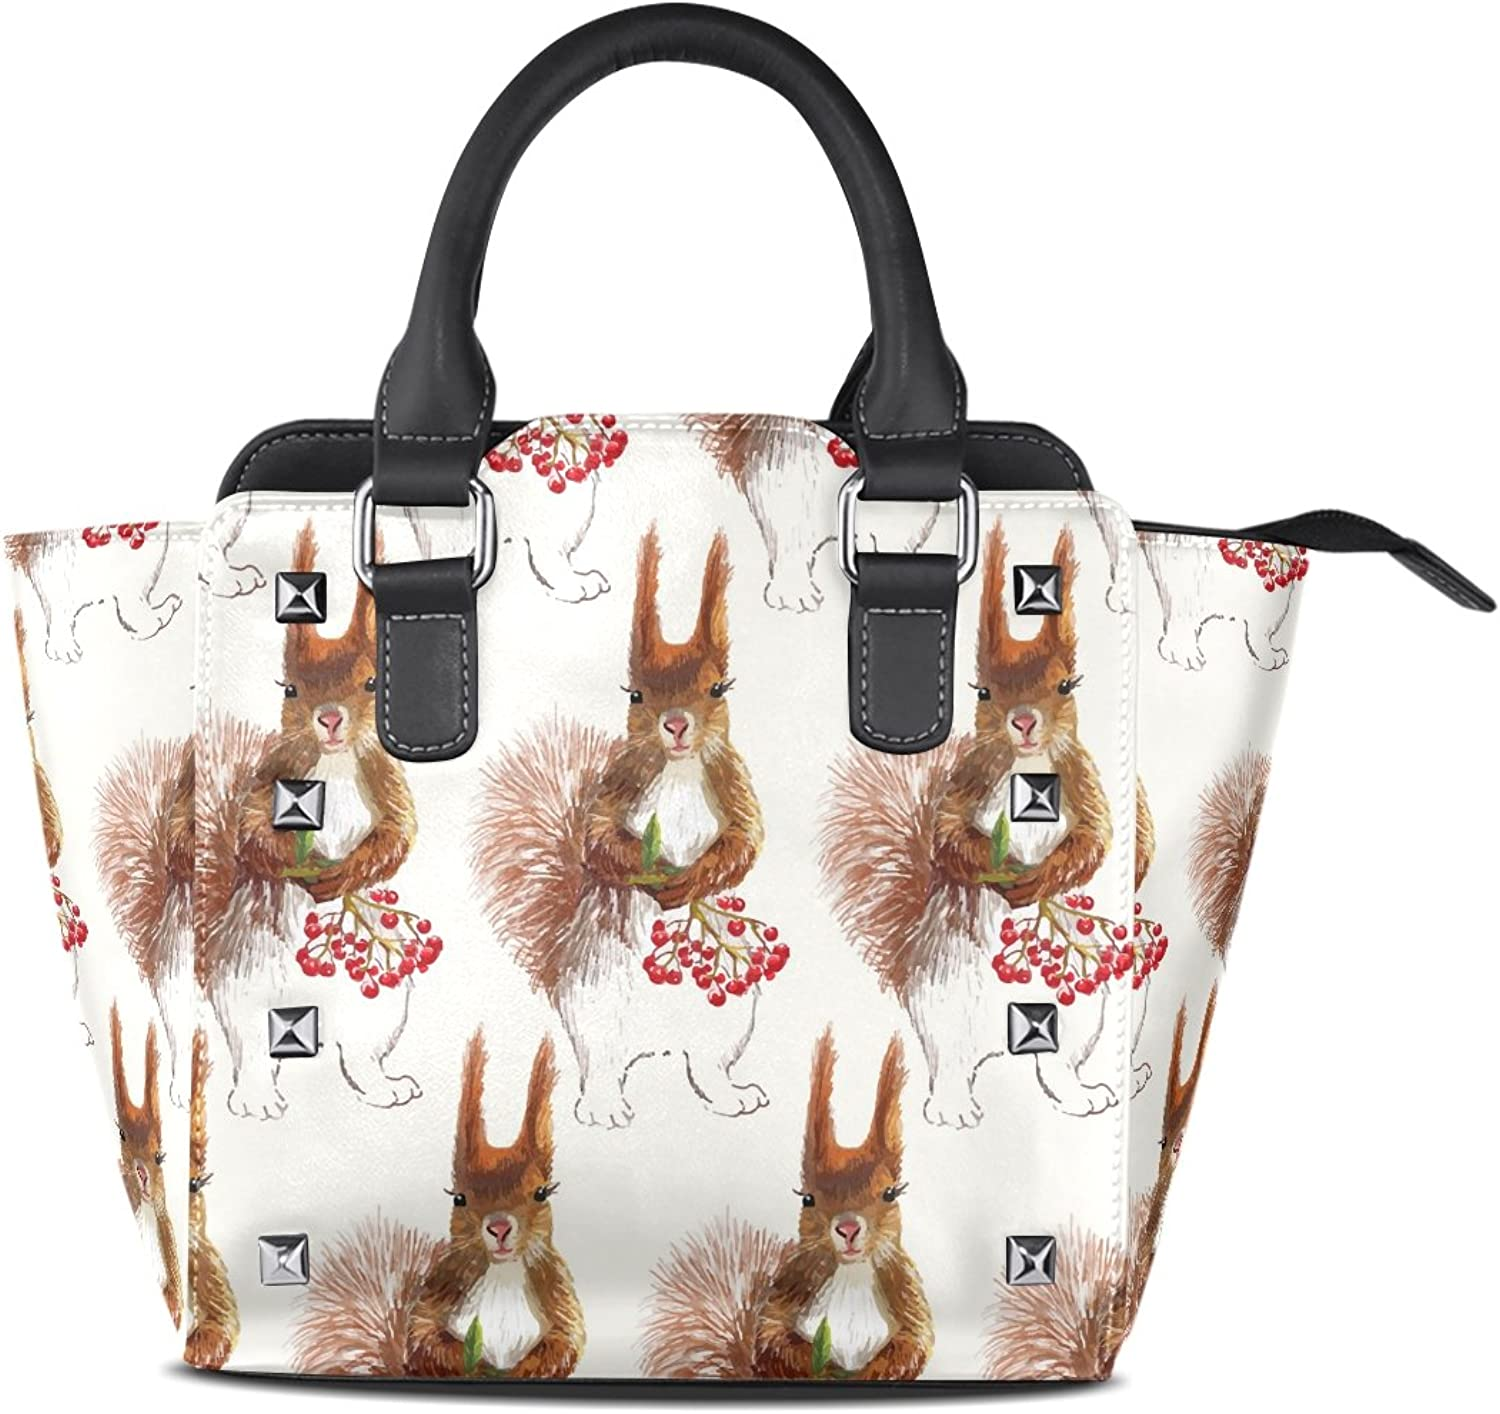 Sunlome Squirrels Cherry Painting Print Handbags Women's PU Leather Top-Handle Shoulder Bags